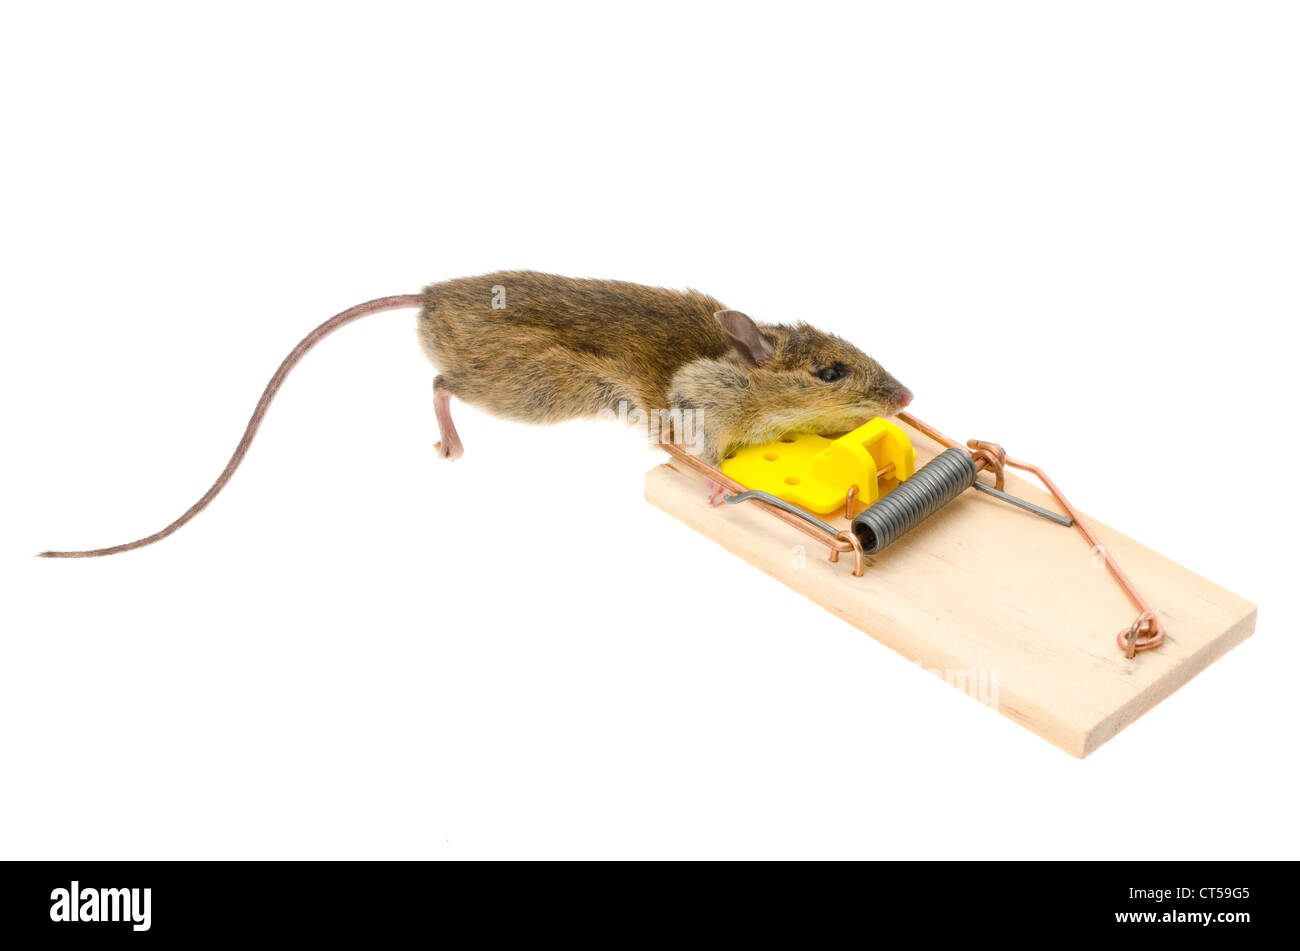 A house mouse (Mus Musculus) with its head caught in a mousetrap - studio shot with a white background Stock Photo